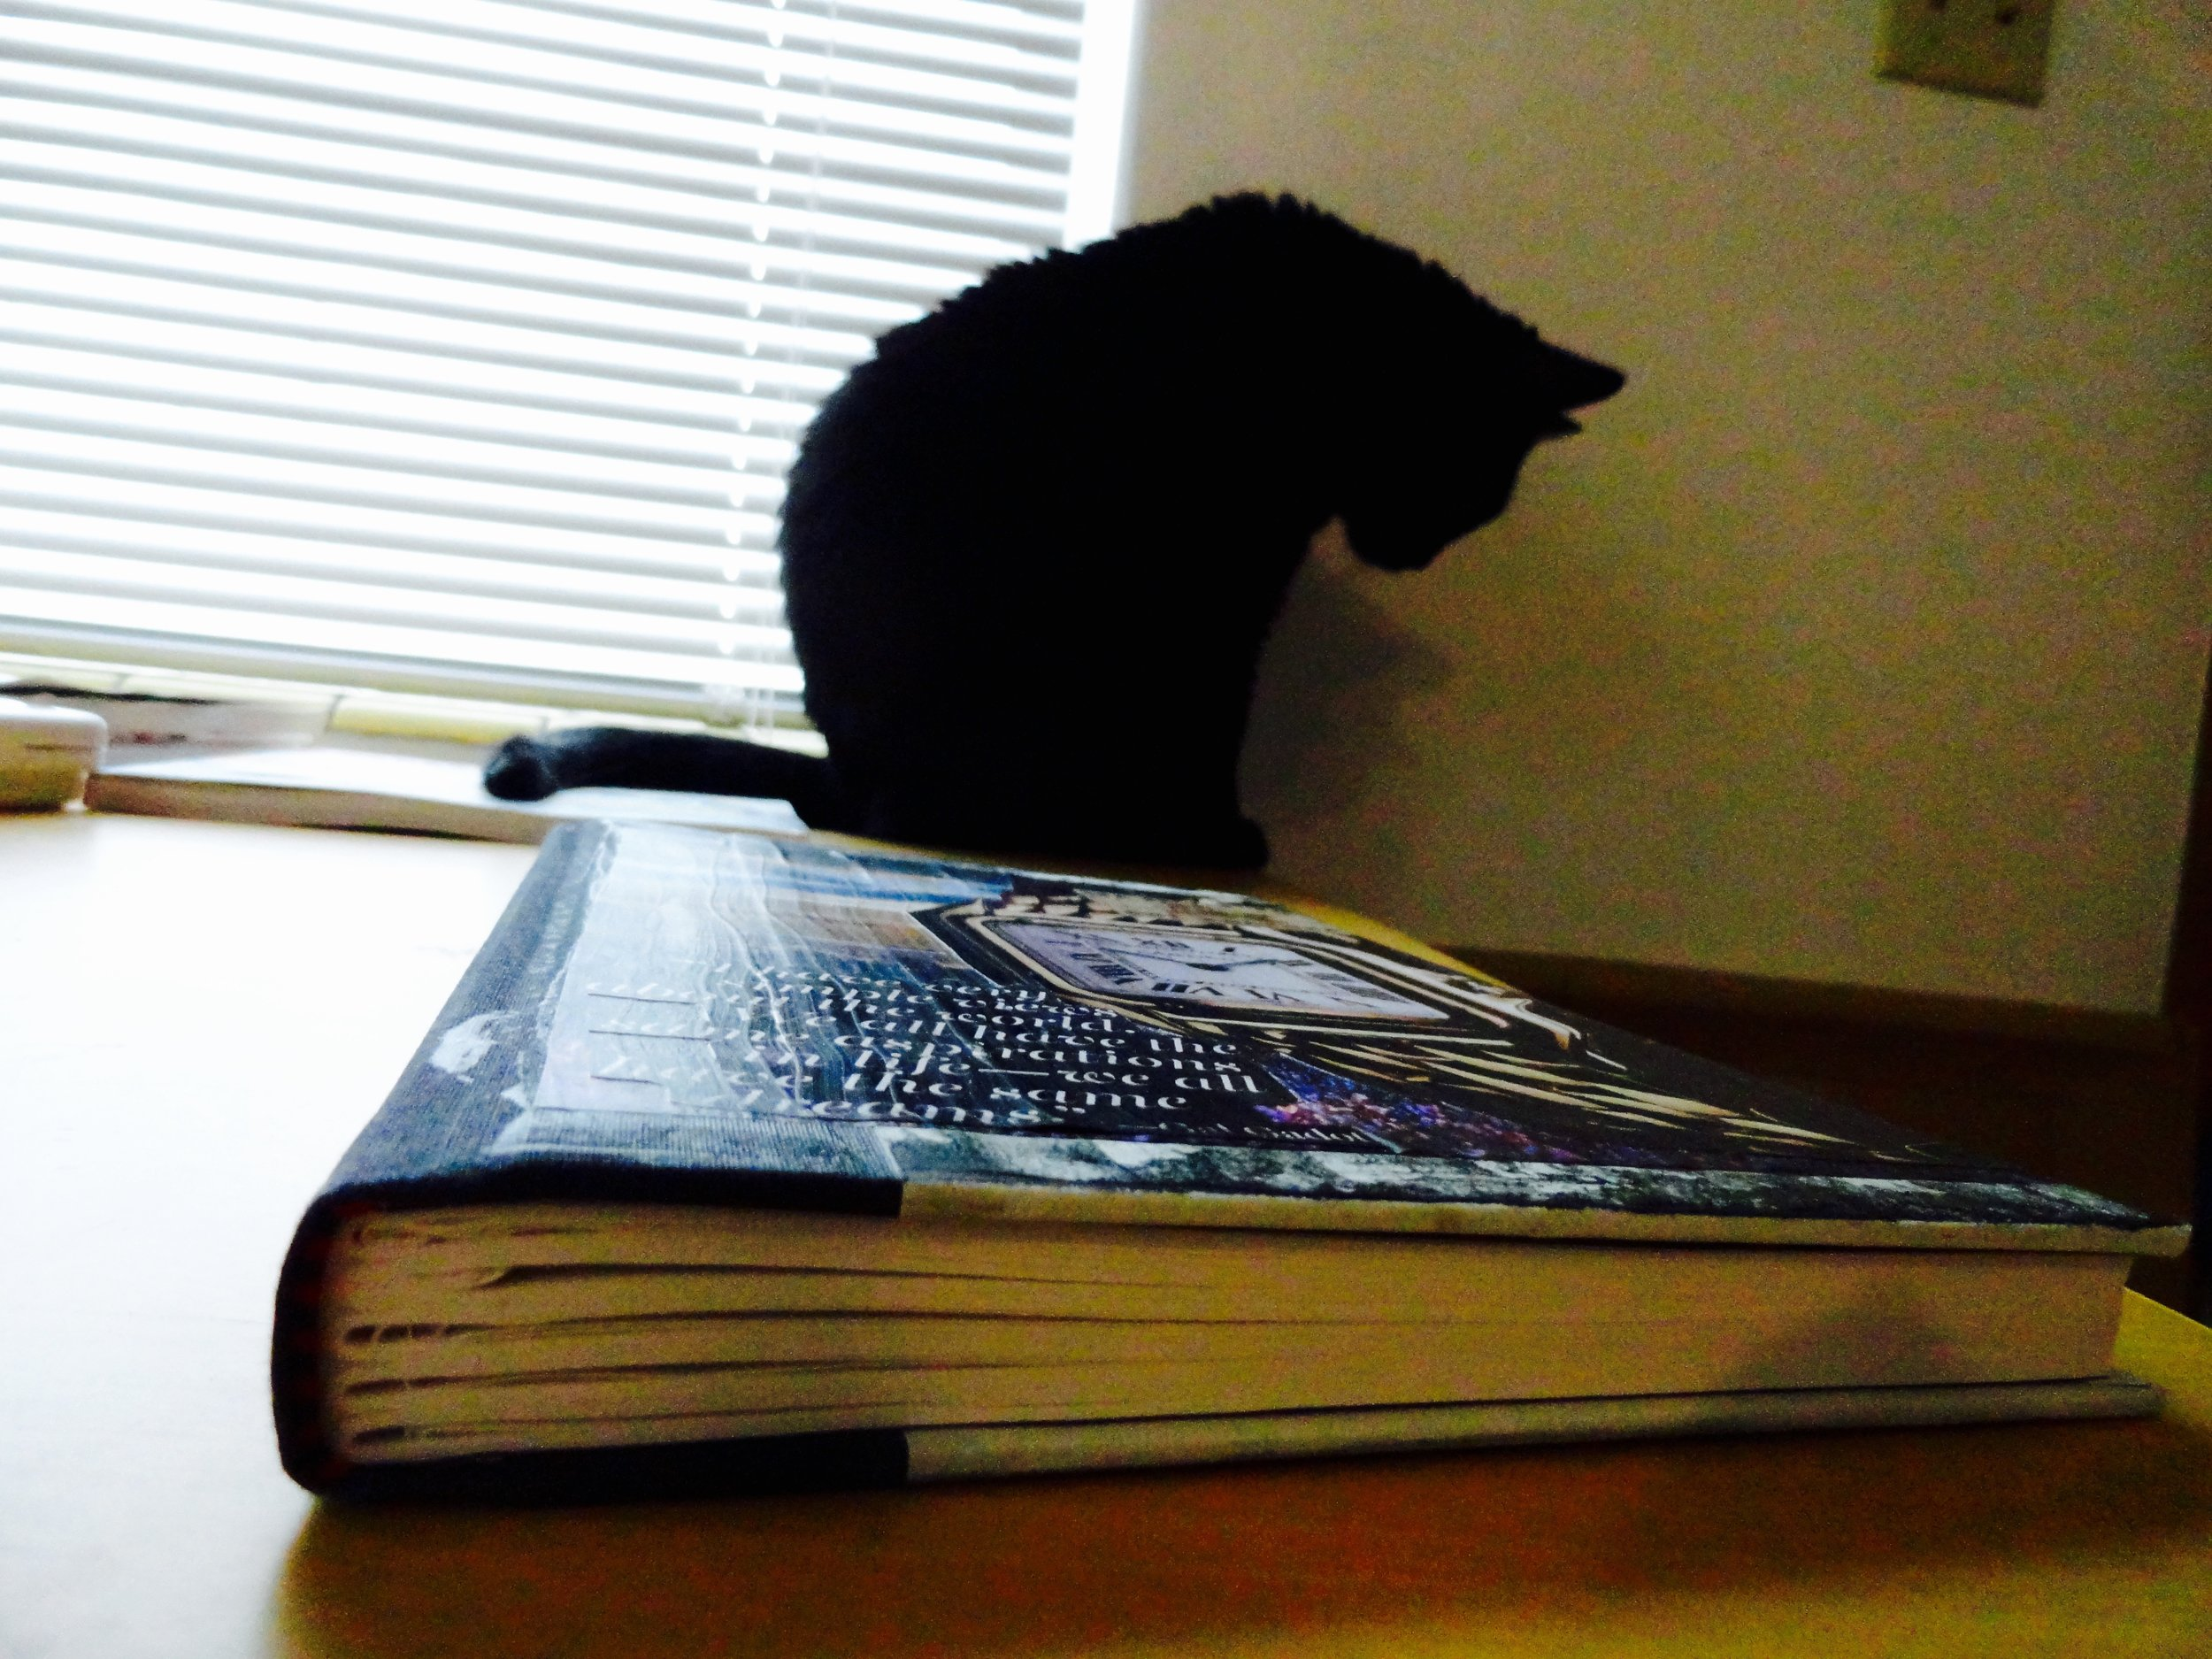 Indy and the new journal